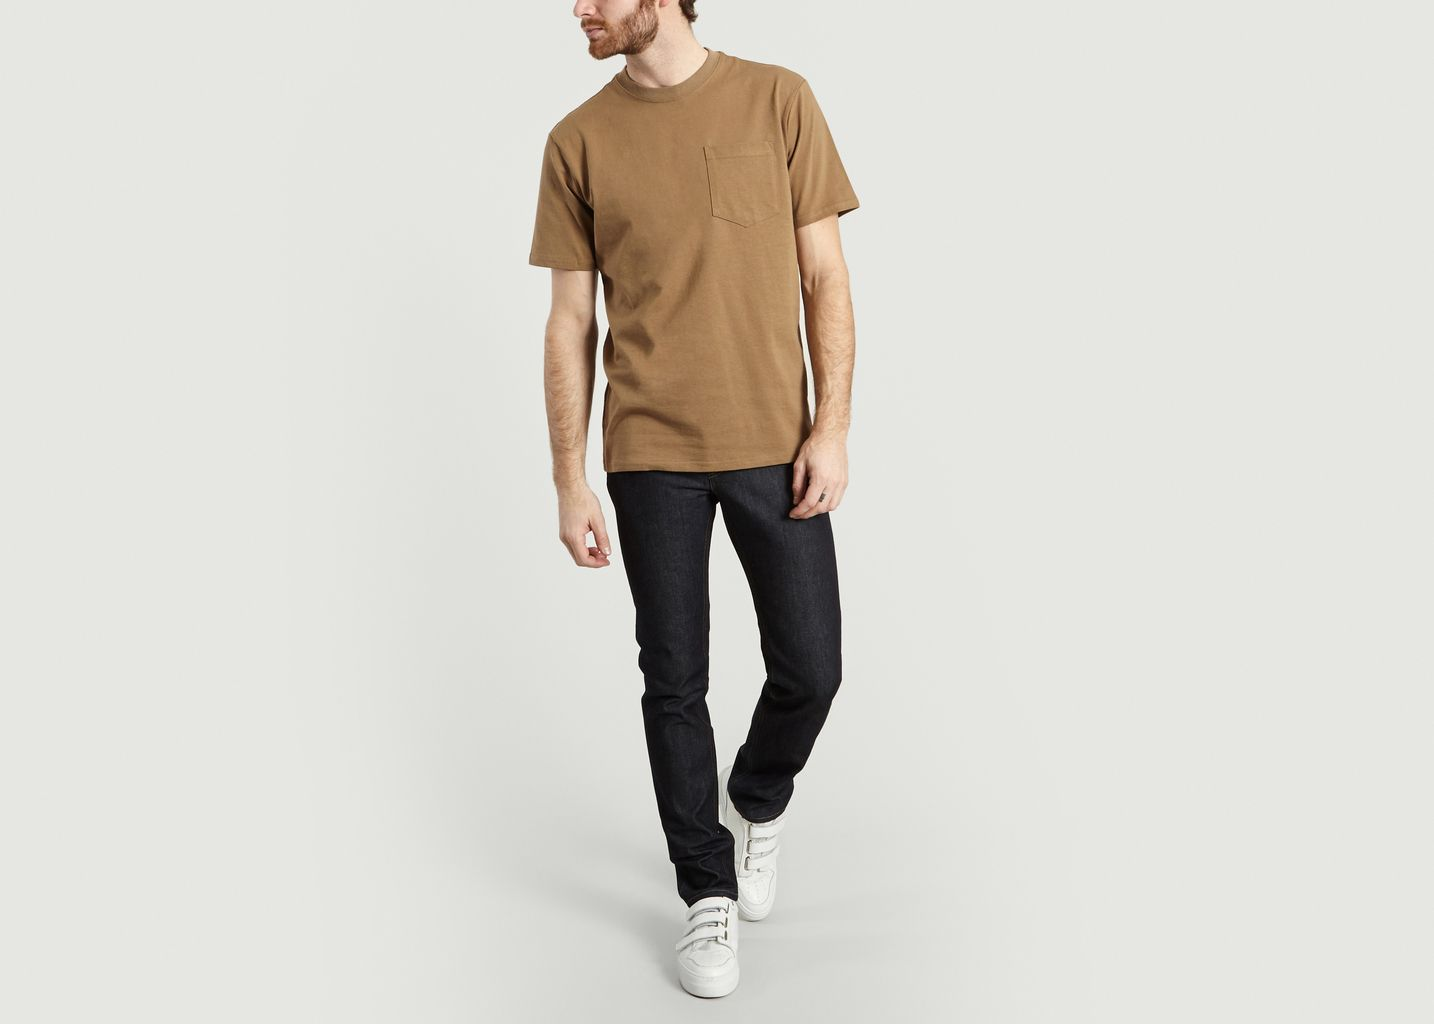 Outfitter Solid Pocket T-shirt - Filson